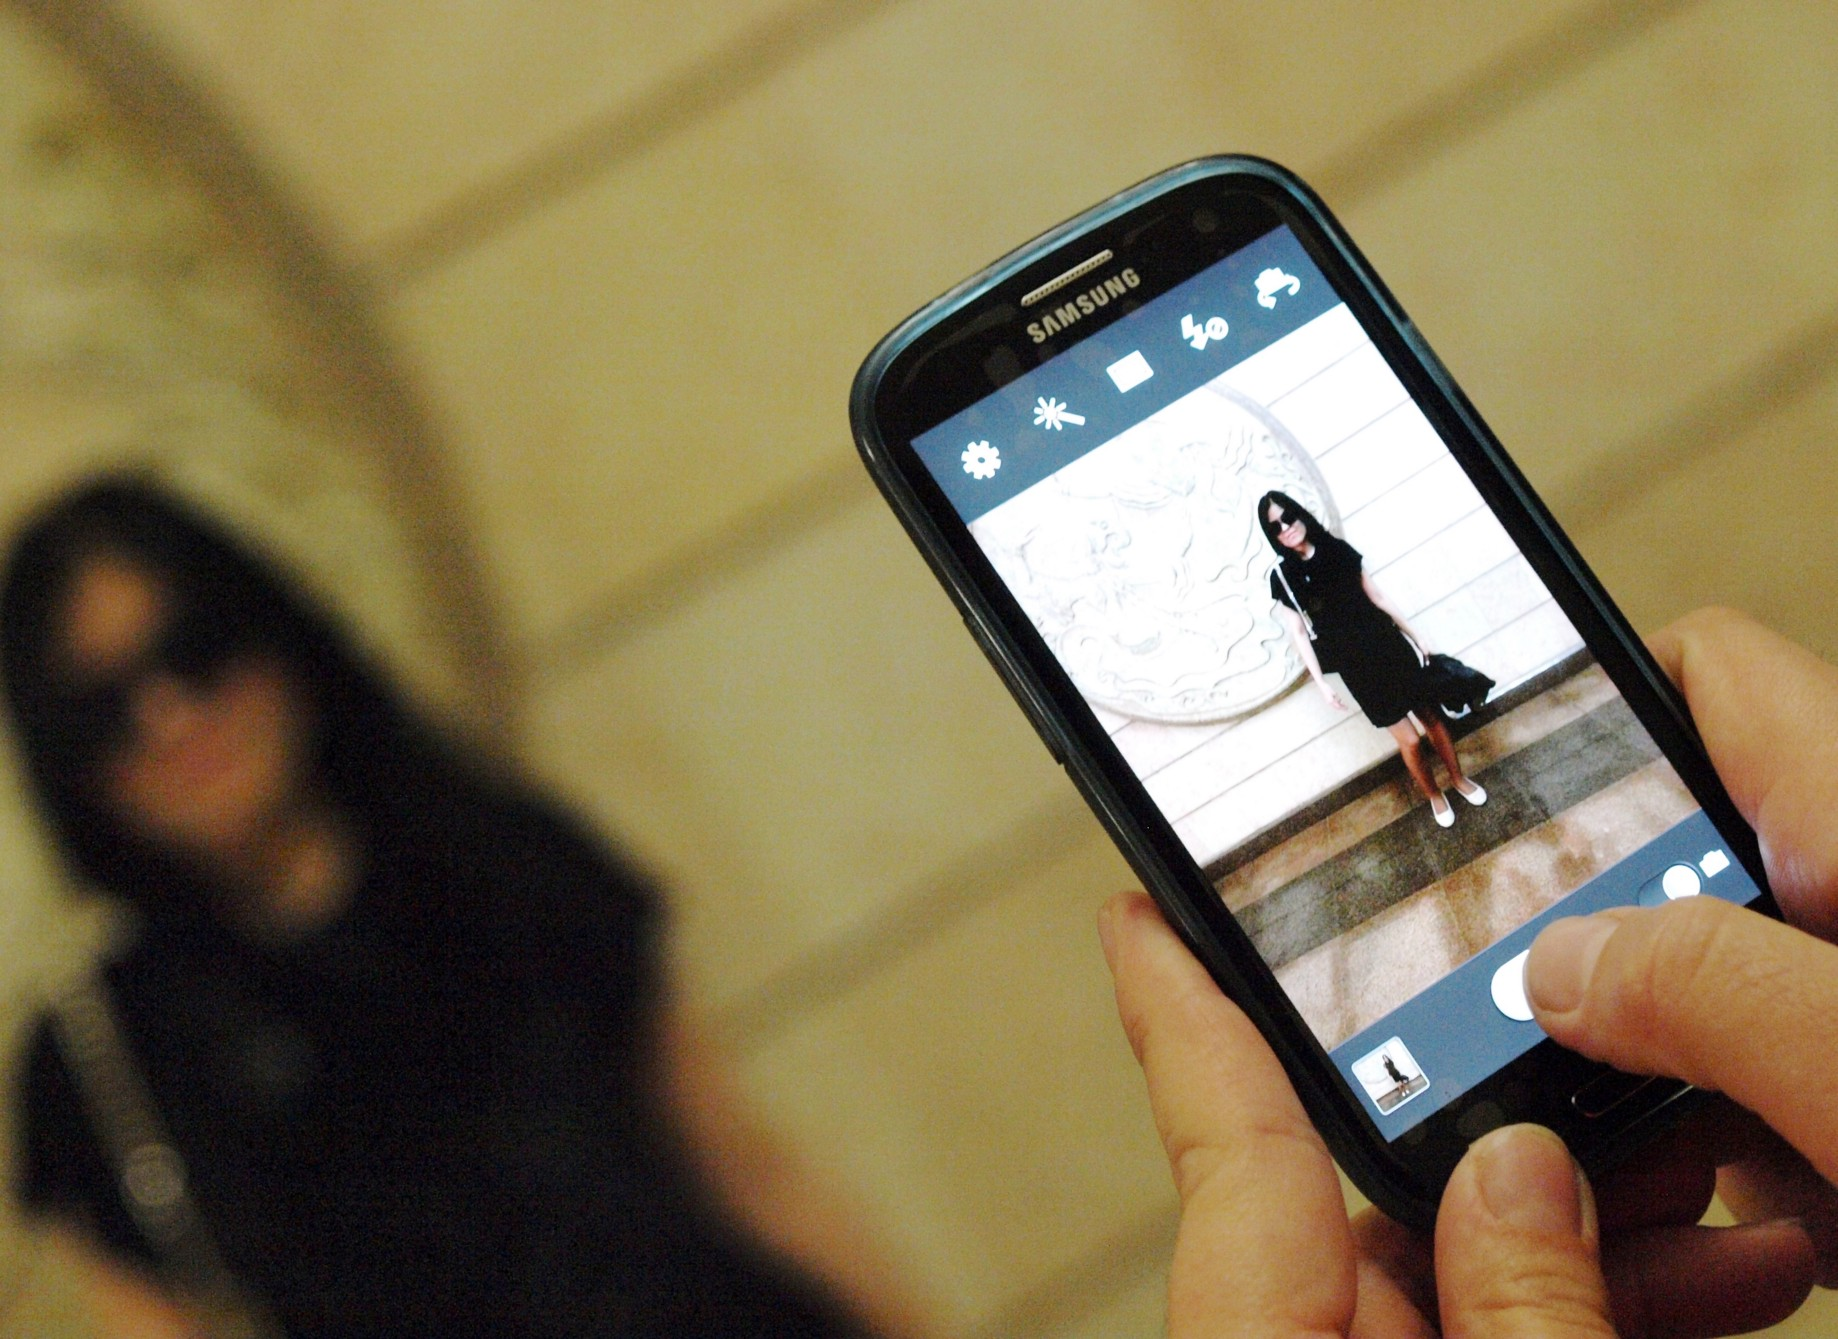 Social Media: How Photography Plays a Role in Everyday